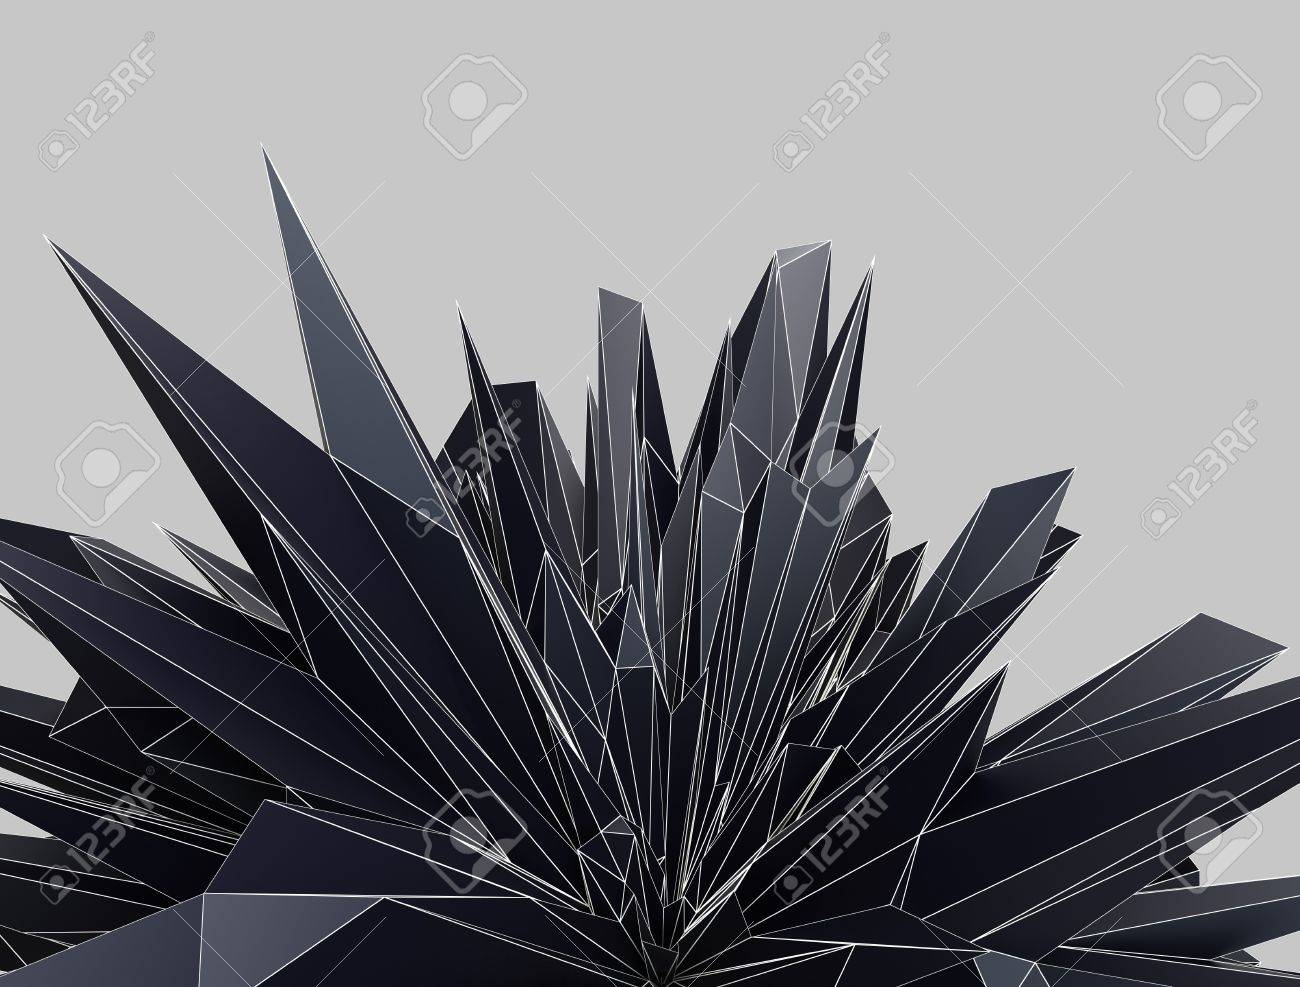 abstract background made of dynamic triangular shapes stock photo